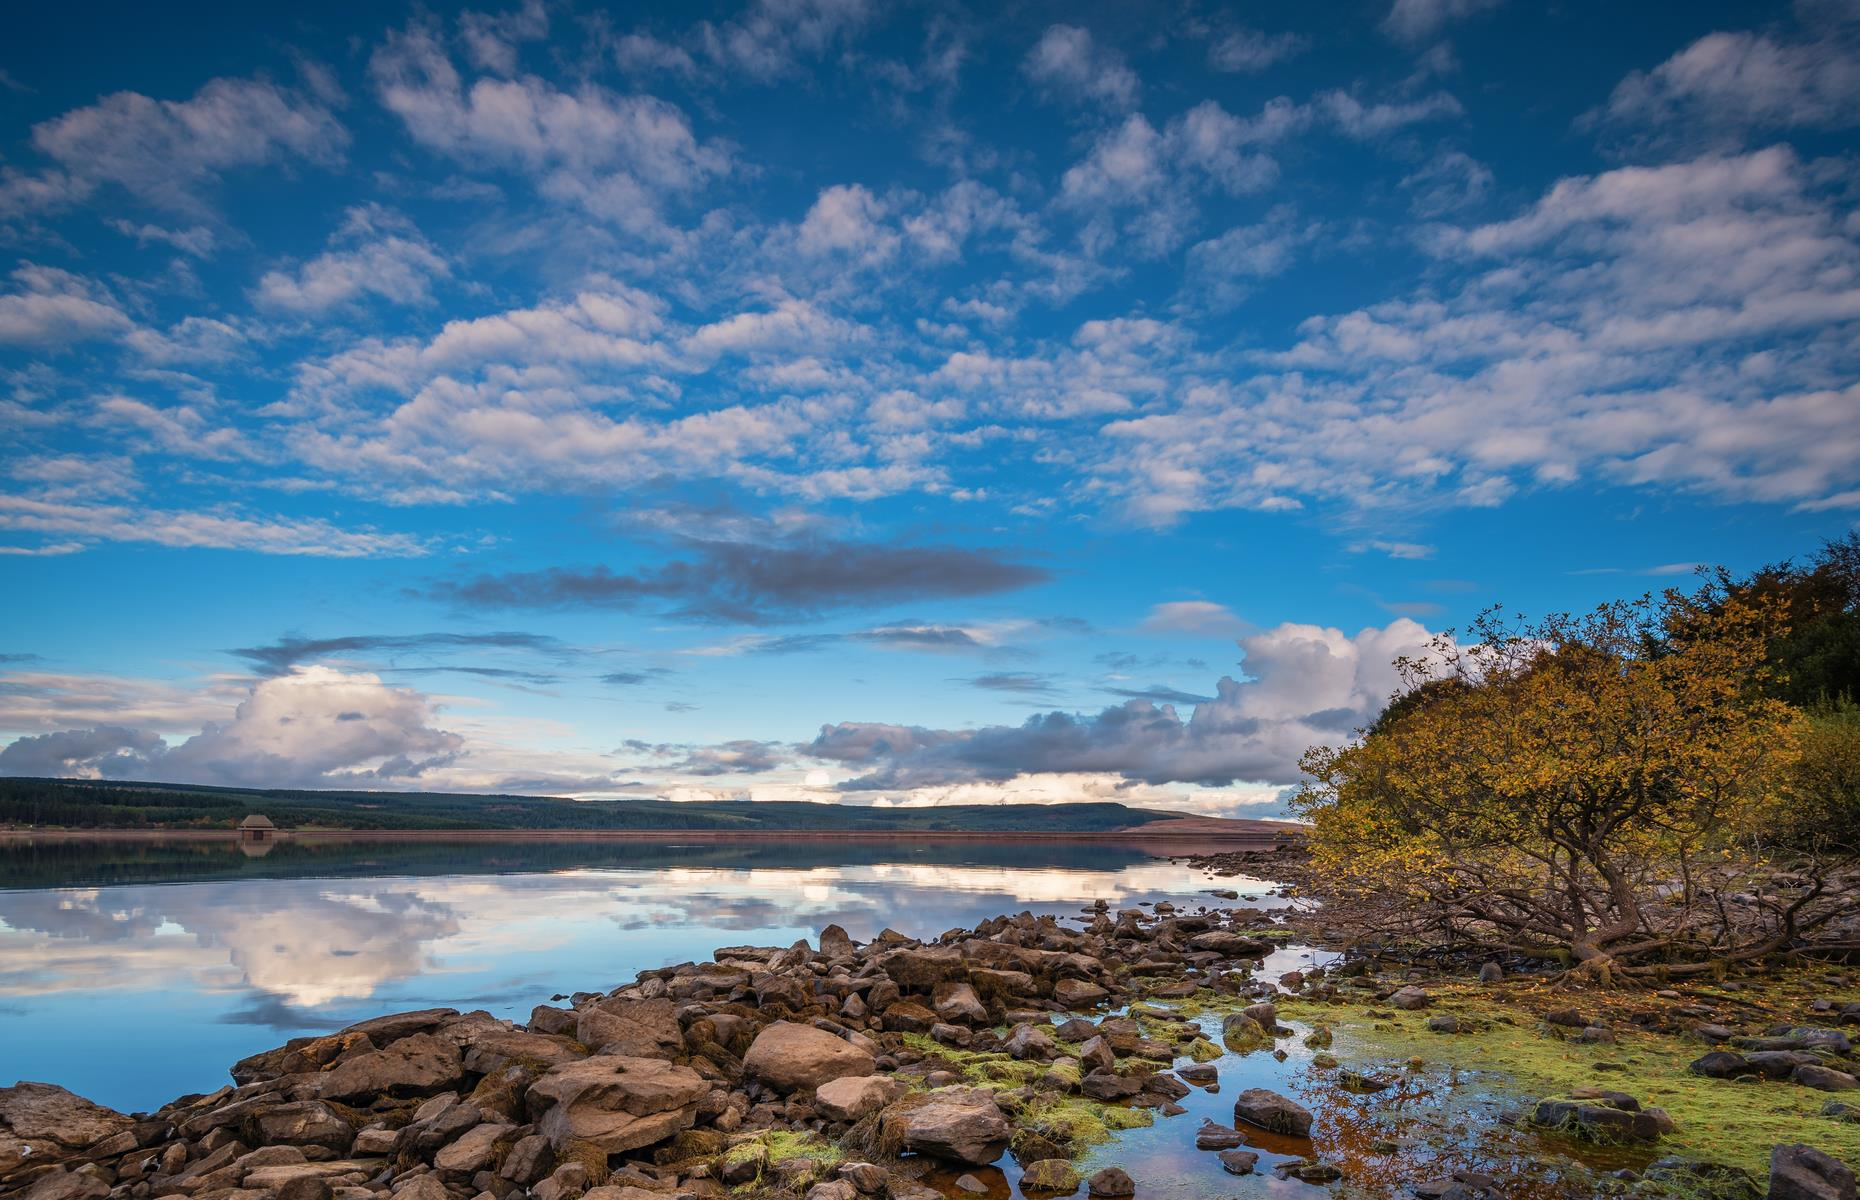 Slide 4 of 31: The biggest man-made lake in northern Europe by volume, Kielder Water in Northumberland has a 27-mile (43km) shoreline and is 170 feet (52m) at its deepest point. It's also surrounded by the largest working forest in England, at over 250 square miles (647sq km), and an important sanctuary for native species. Kielder Water & Forest Park is home to otters and the endangered water vole, which were reintroduced here in 2017. It's also the site of the largest conservation salmon hatchery in England – young salmon are raised to be released into the River Tyne.